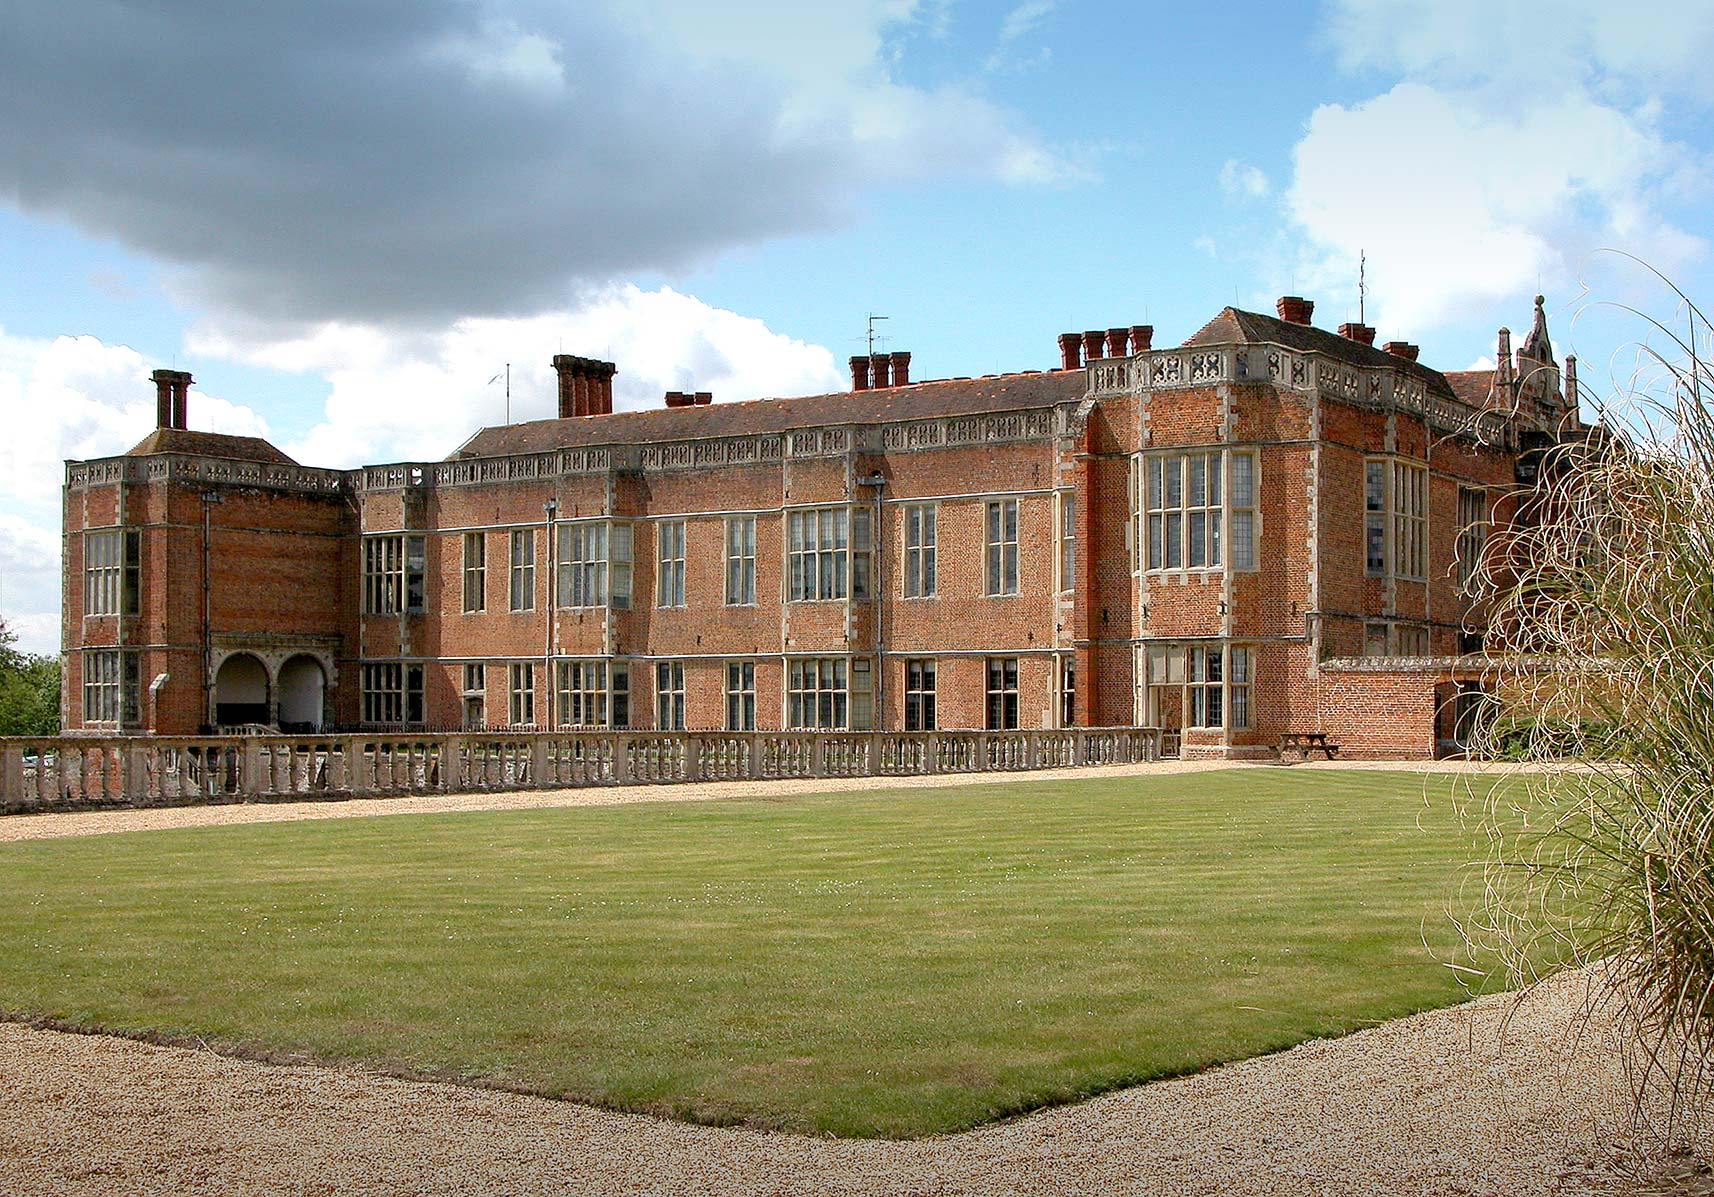 Bramshill Mansion GHK Architects